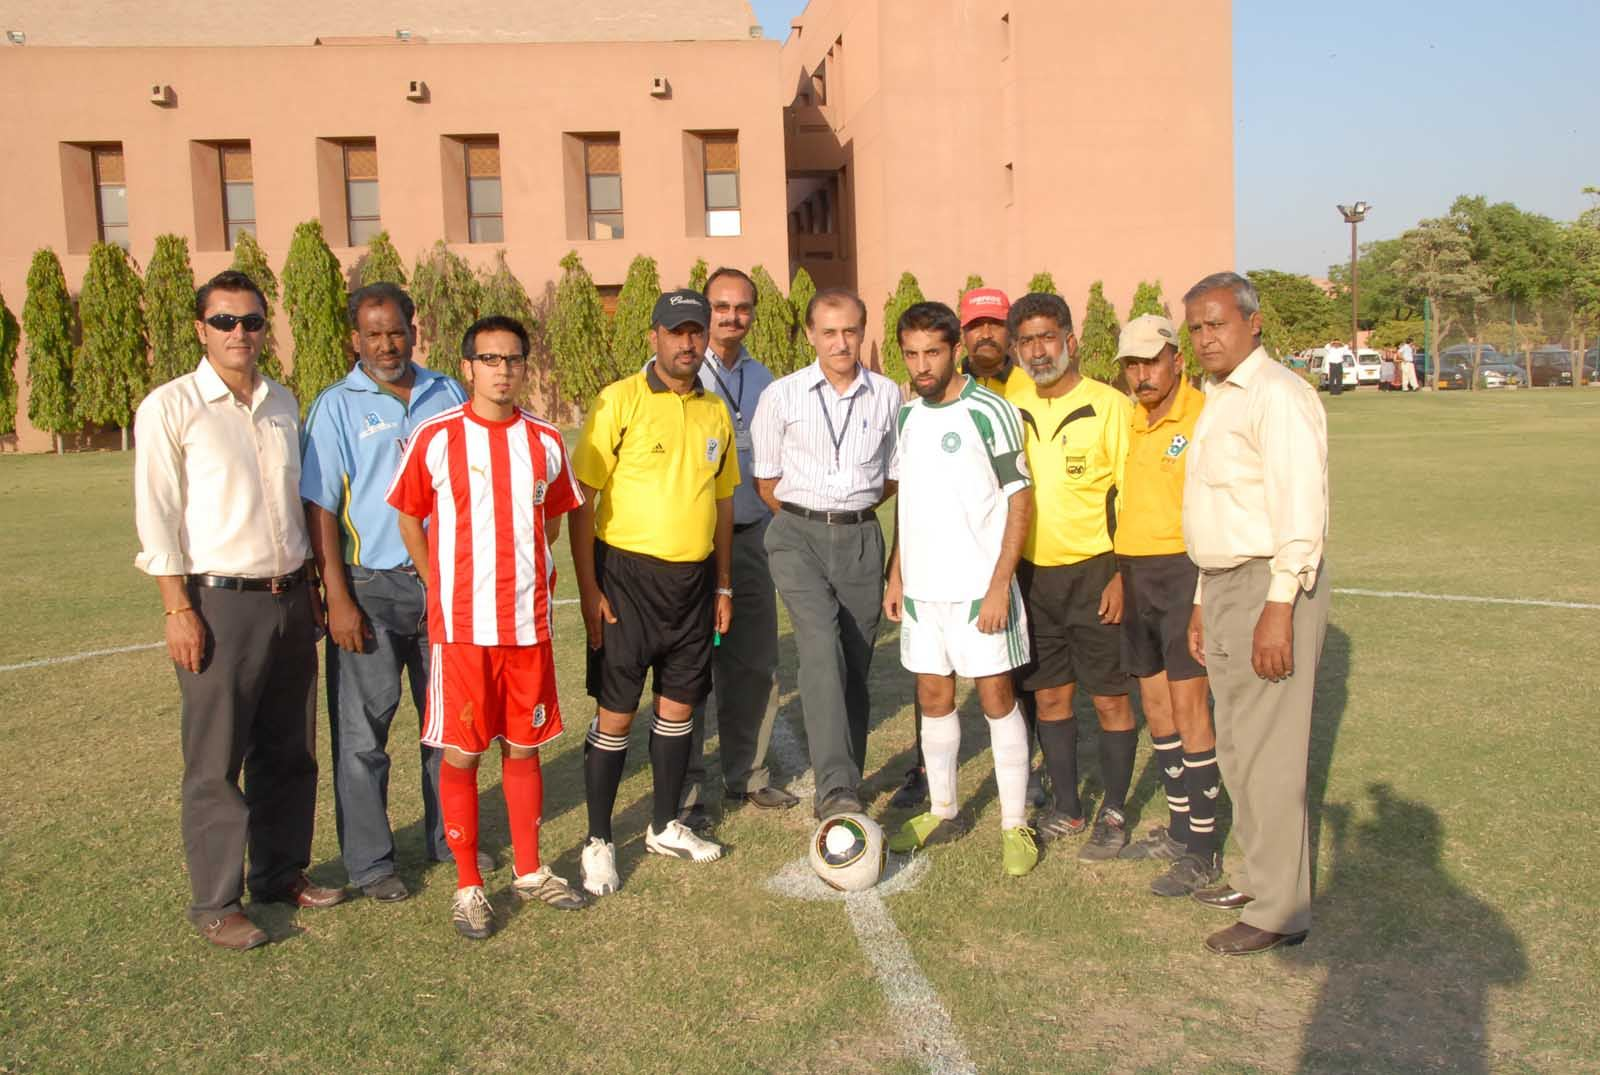 Dr K.M. Inam Pal inaugurates tournament before first game between AKU and IBA-Reserves